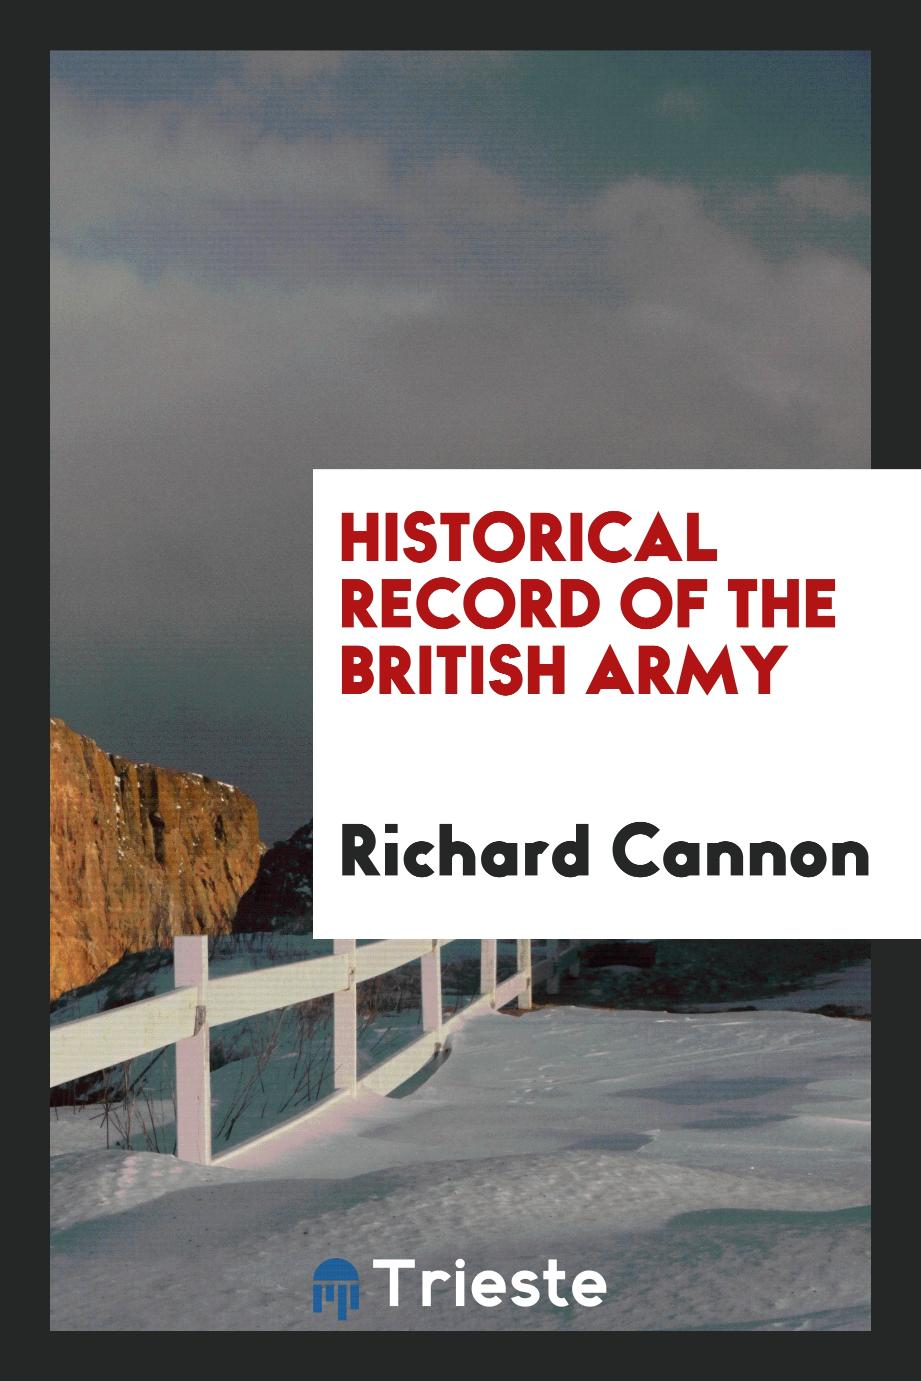 Historical Record of the British Army